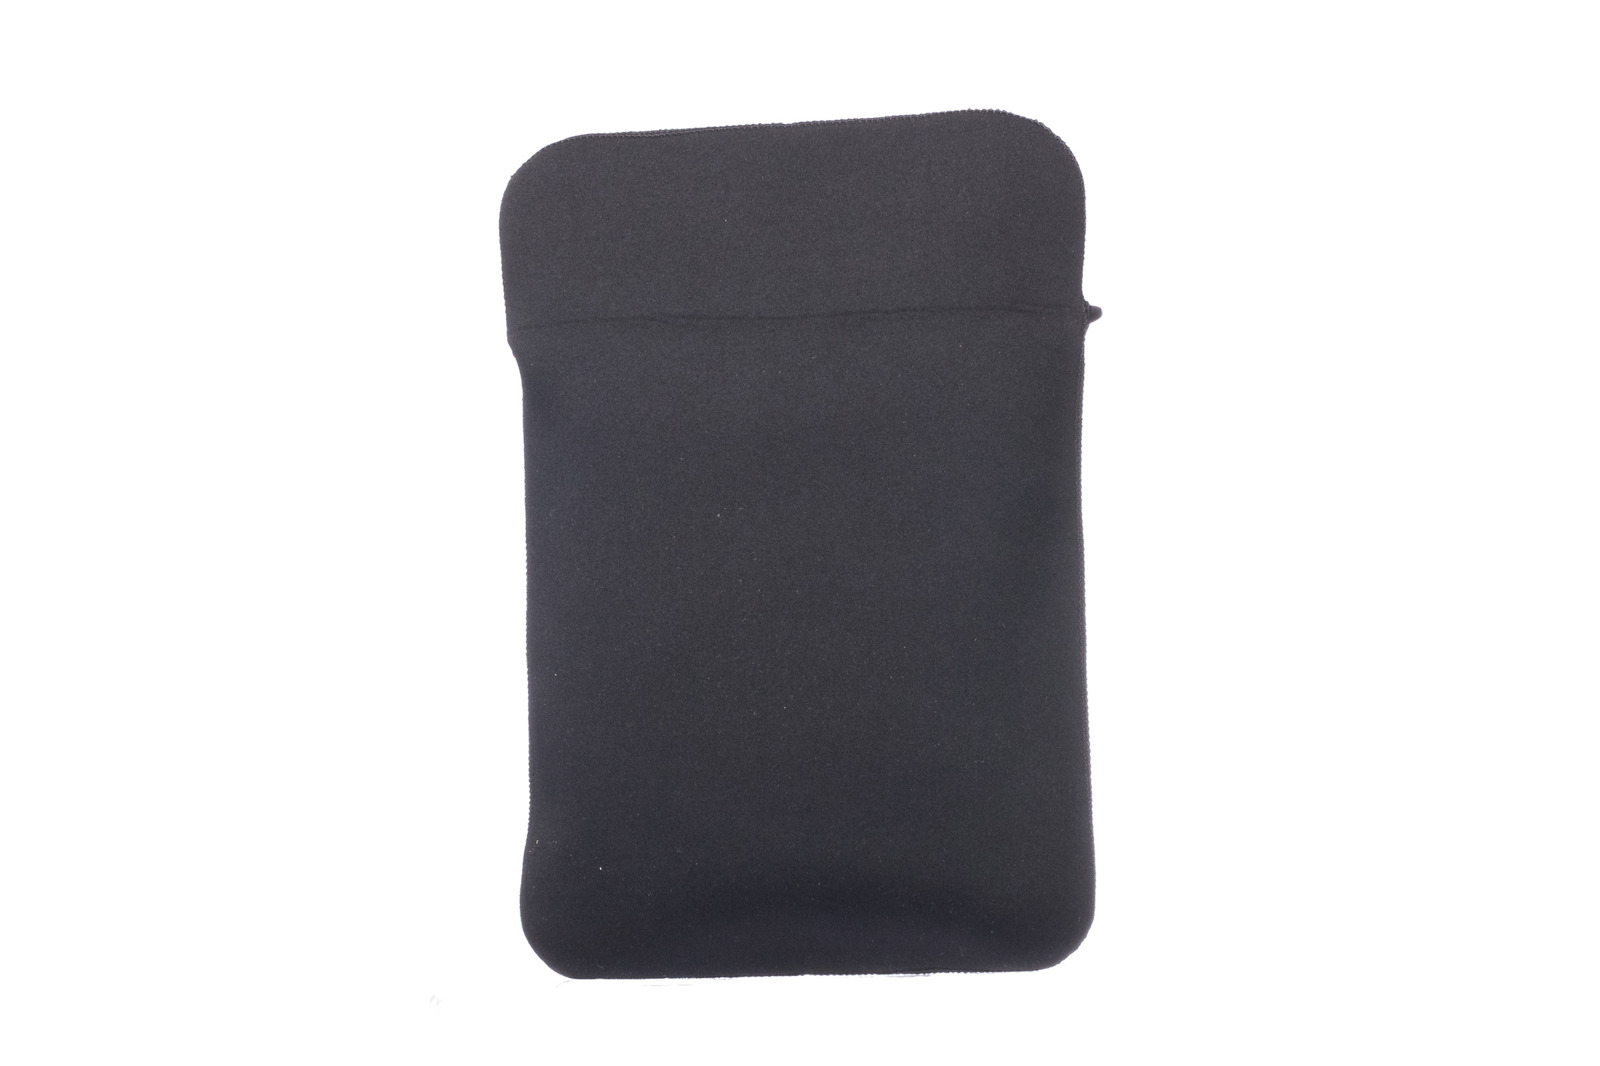 HP Spectre Sleeve, cover for laptop 13.3